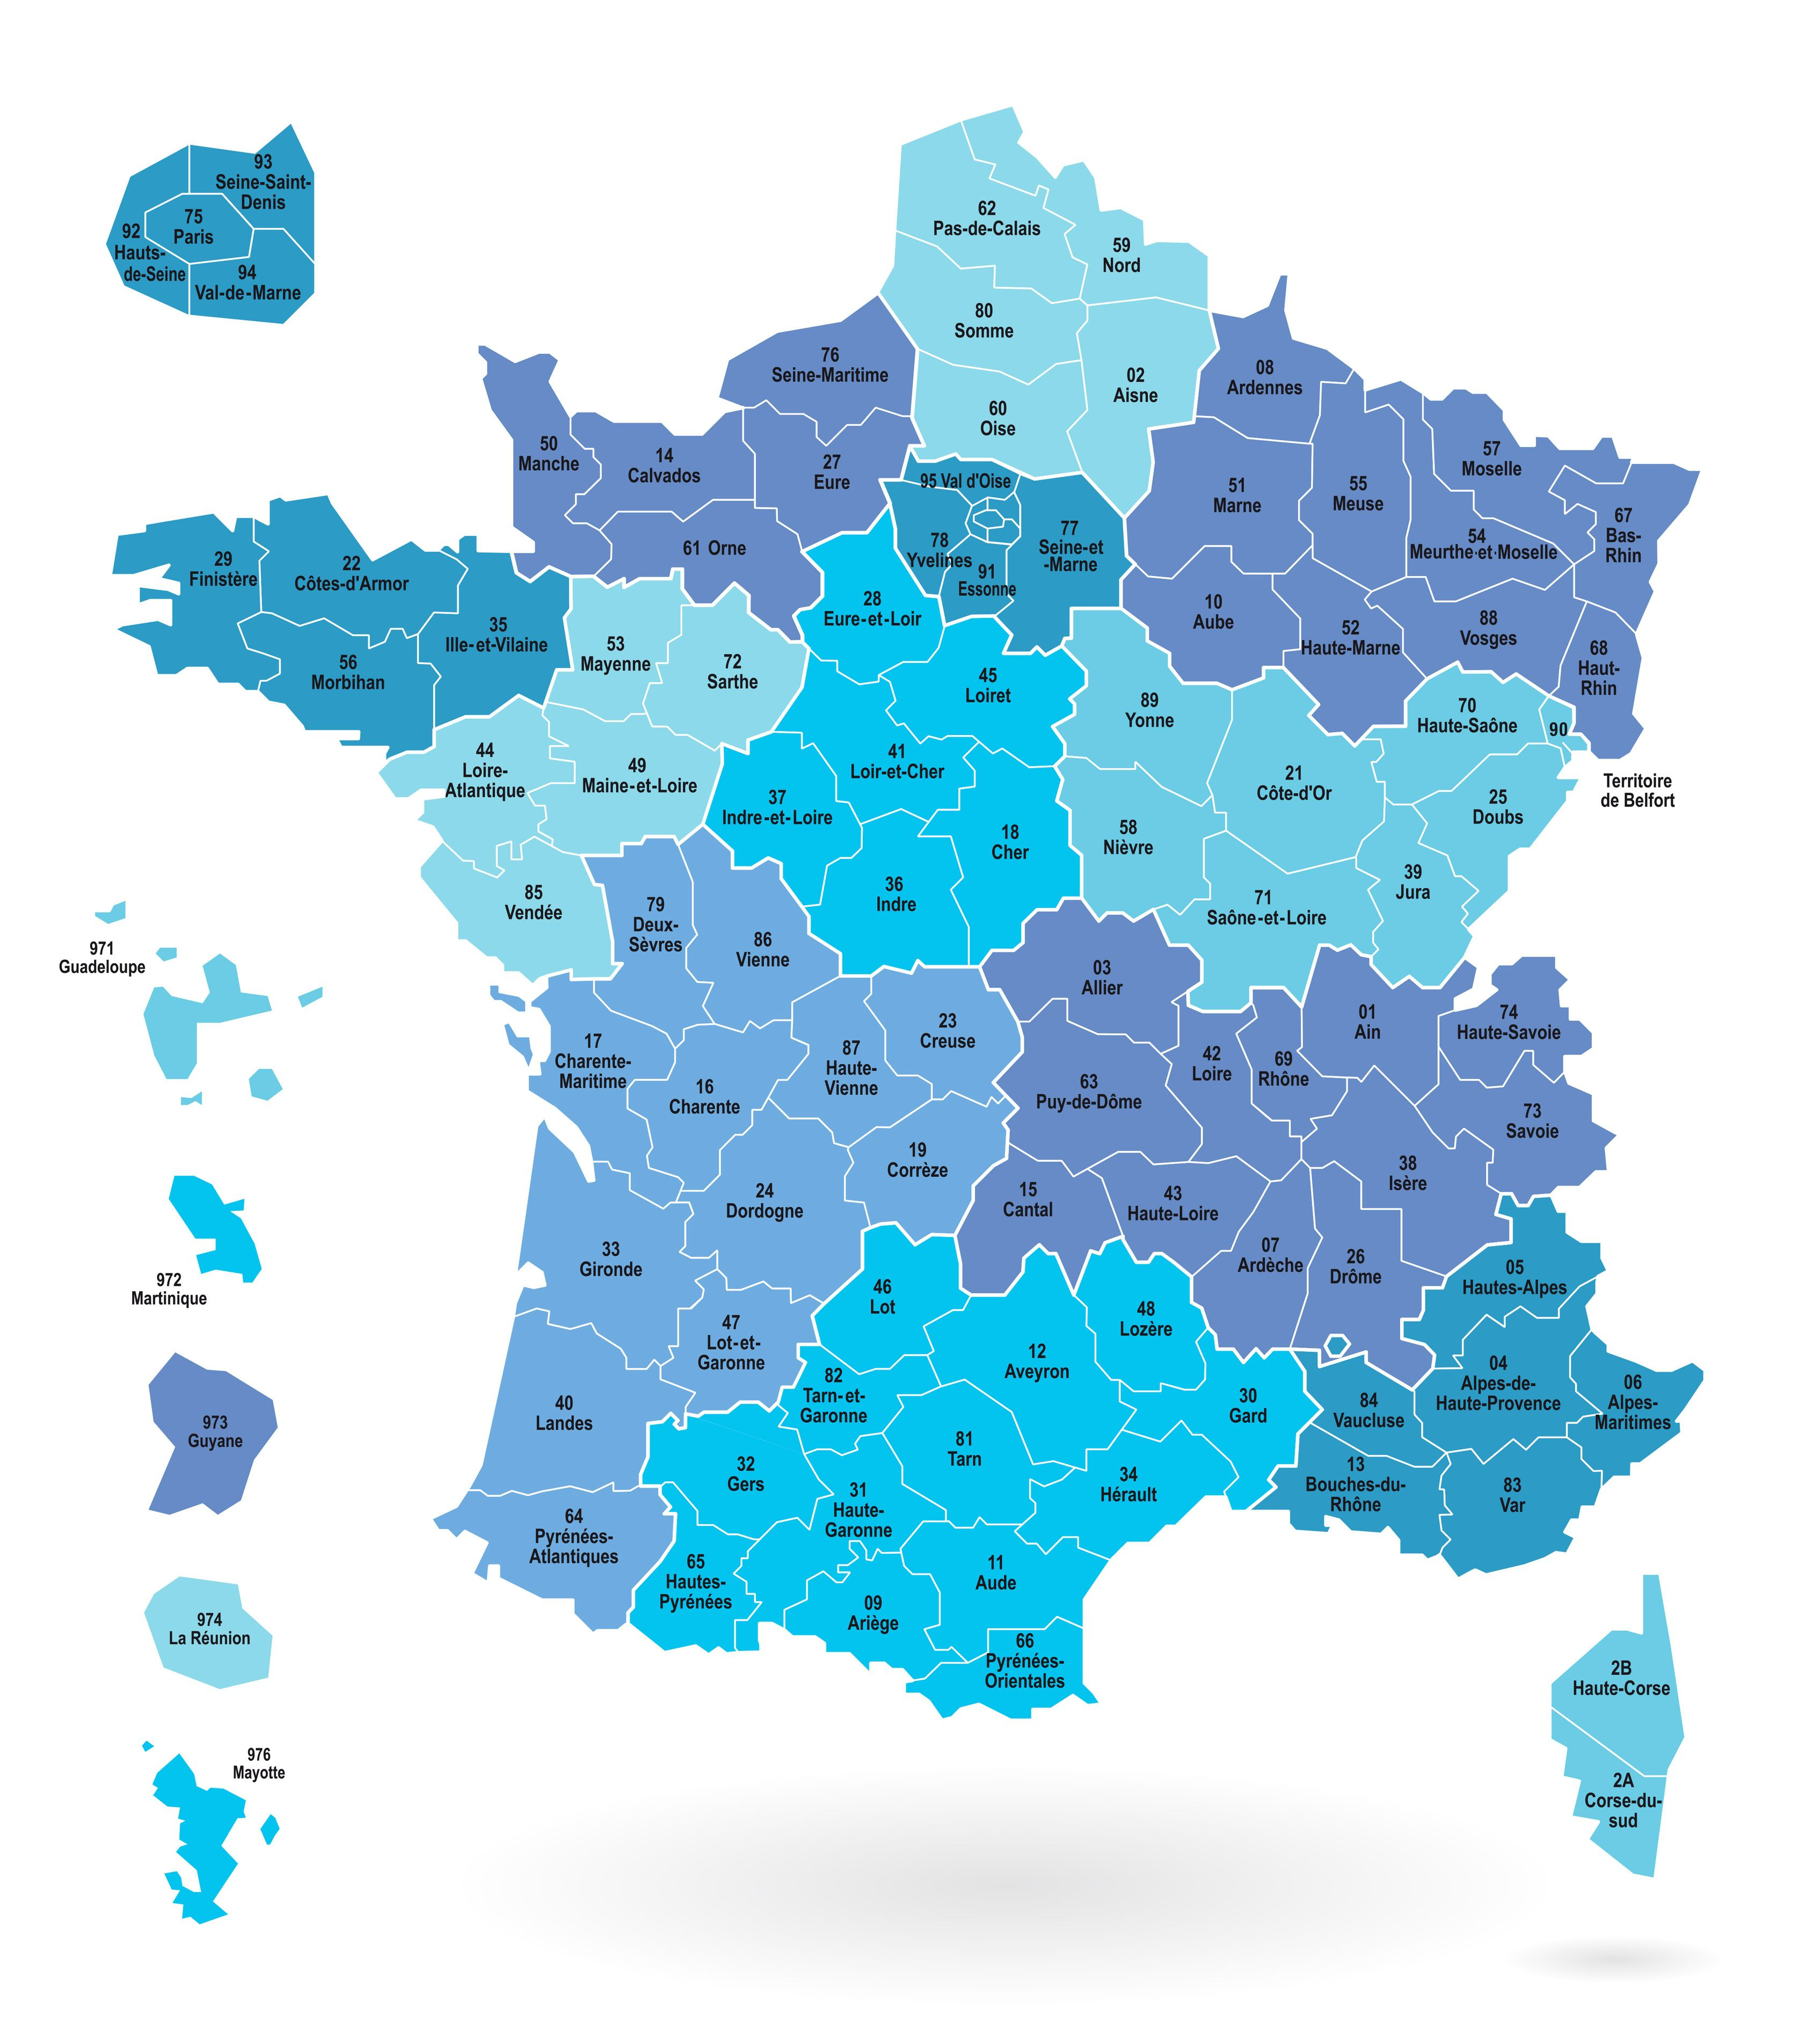 Départements de France métropolitain